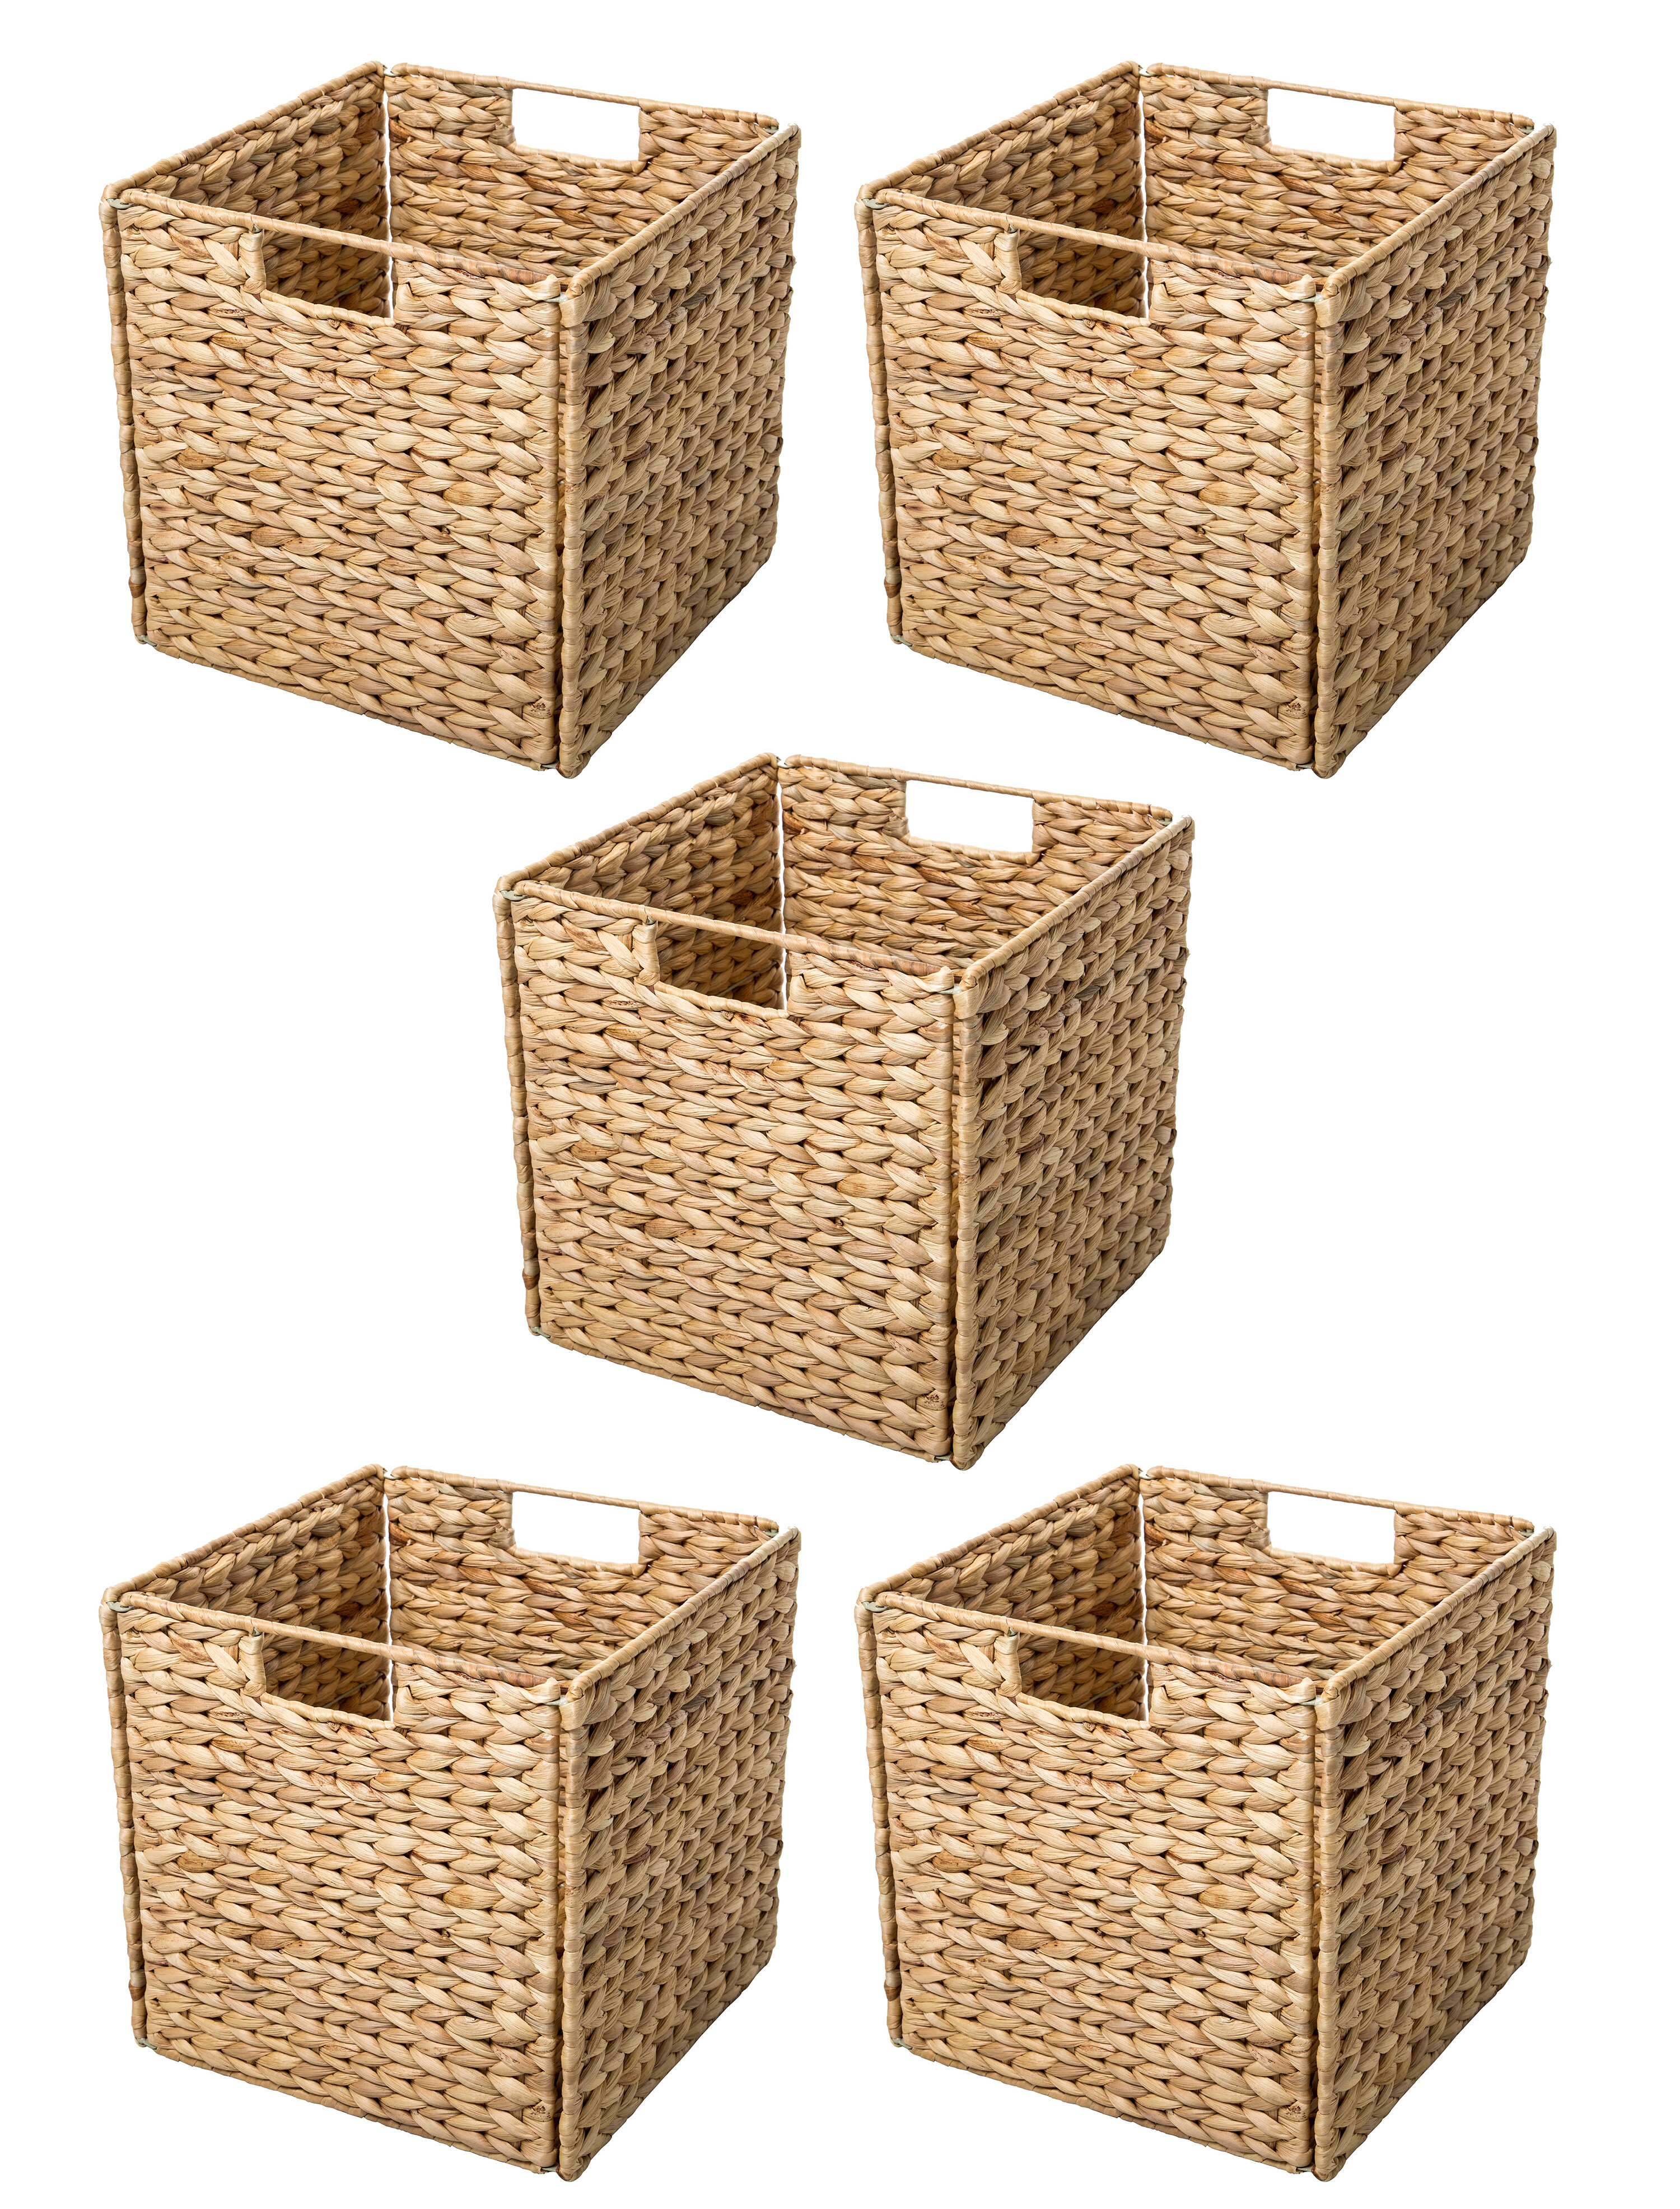 Trademark Innovations Hyacinth Foldable Storage Wicker Basket With Iron Wire Frame Reviews Wayfair